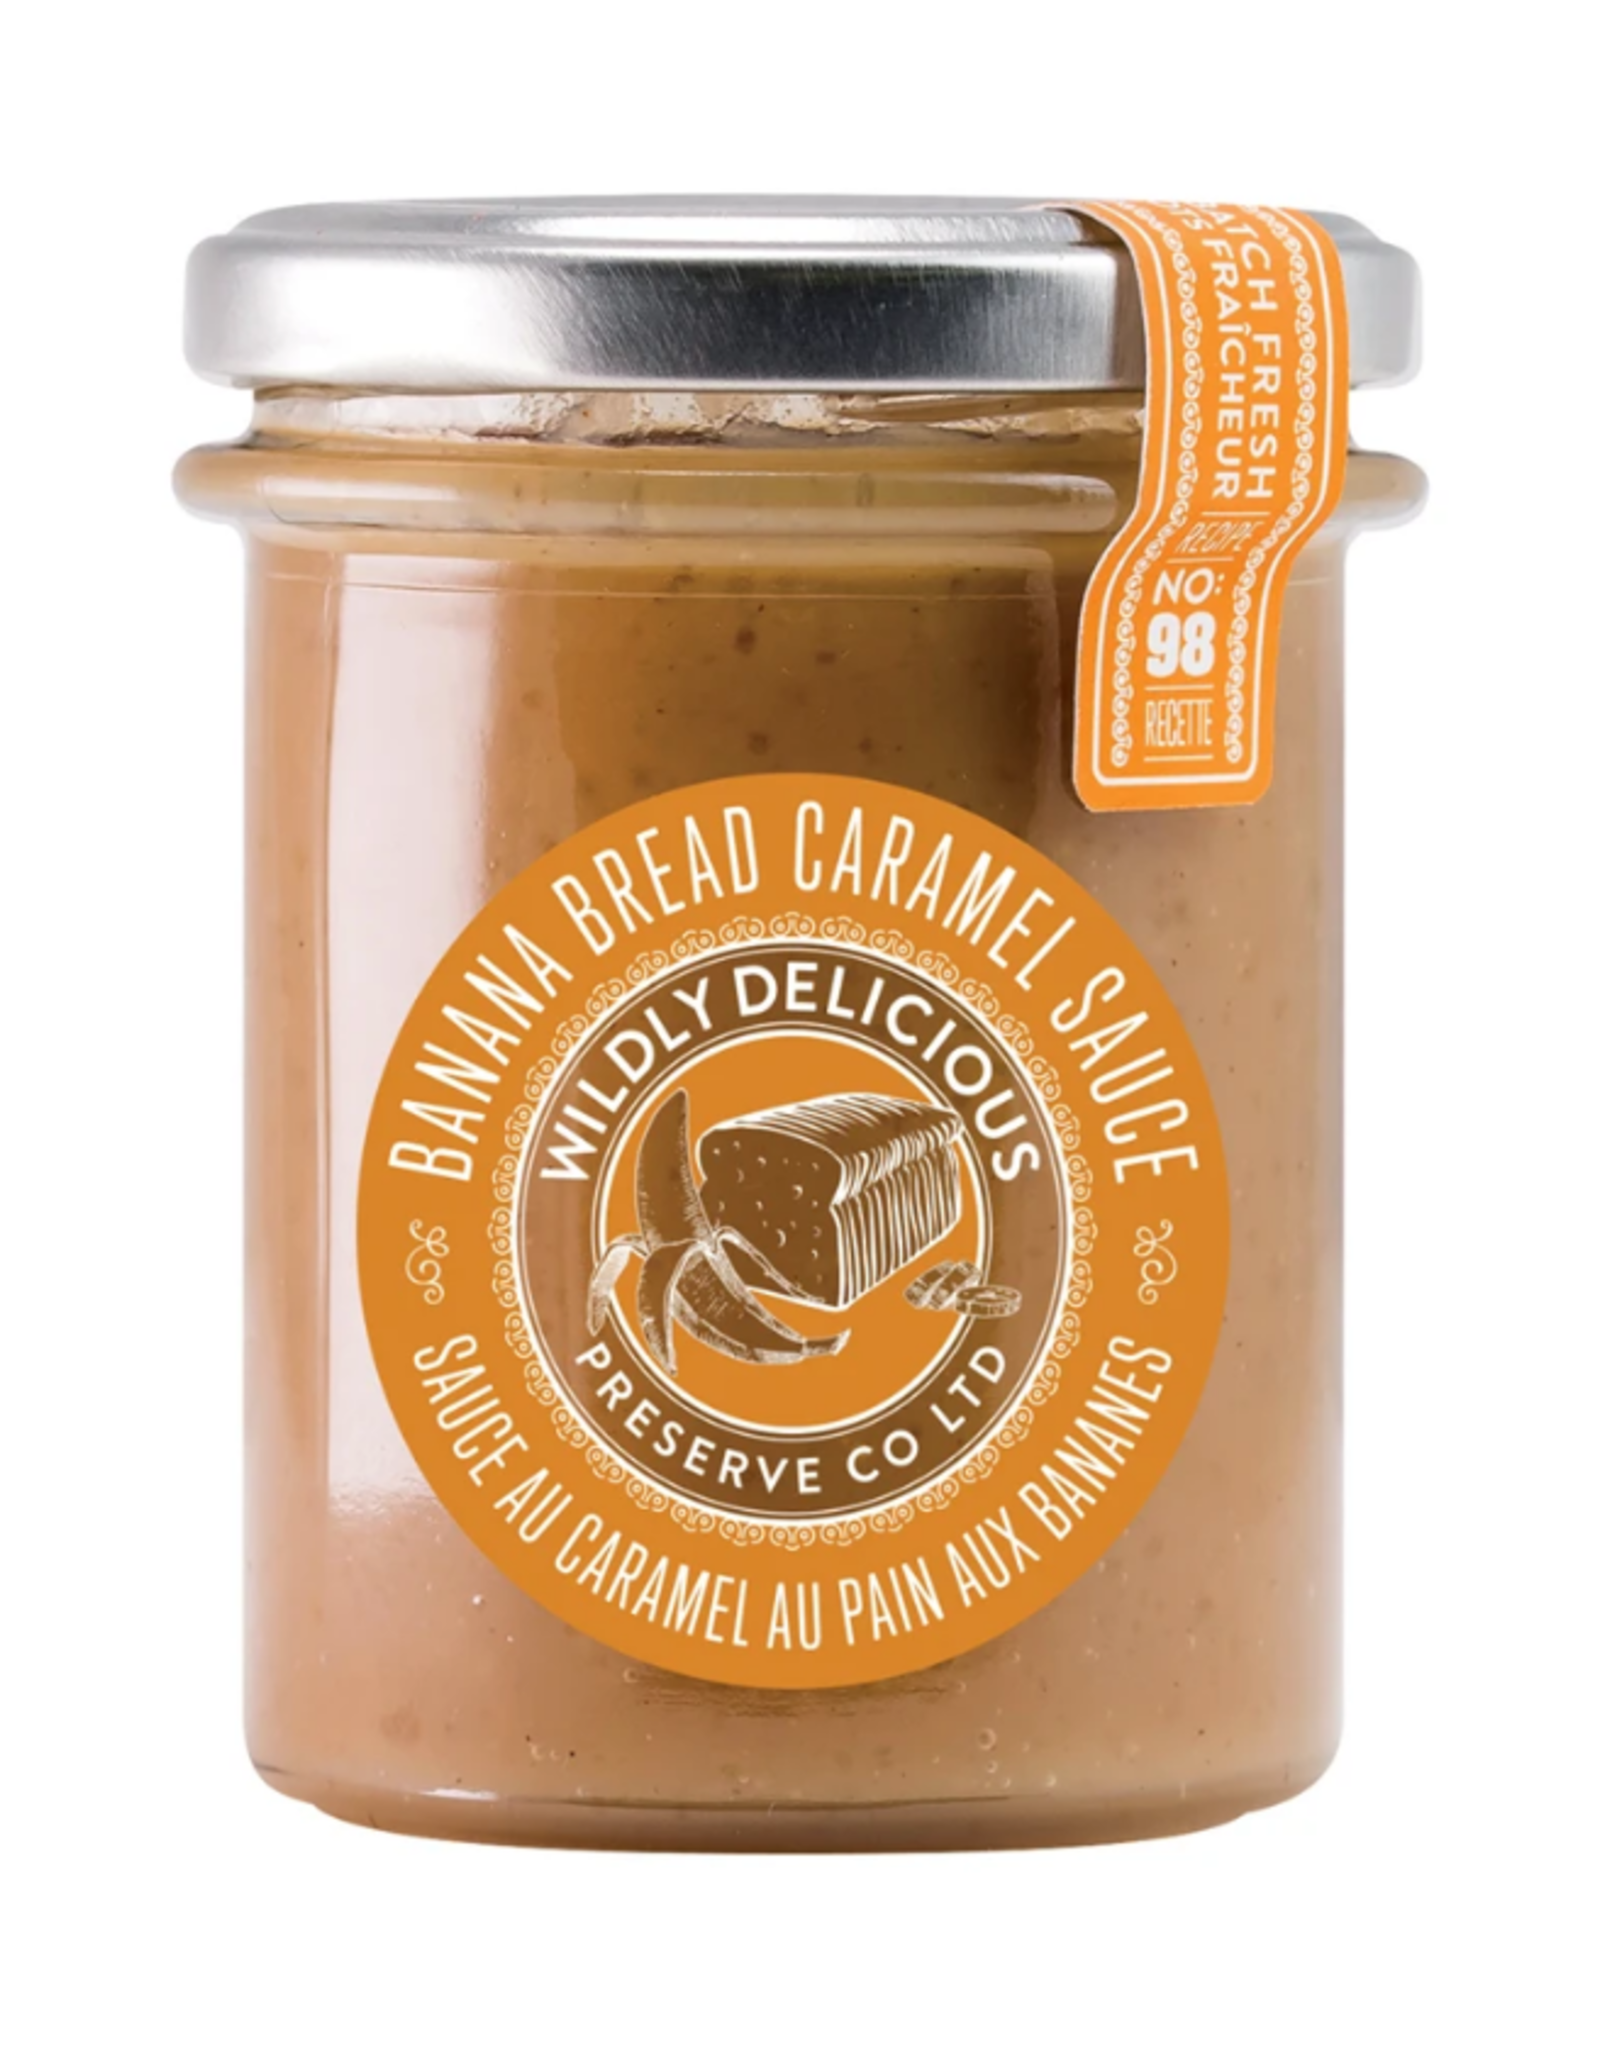 Wildly Delicious Banana Bread Caramel Sauce